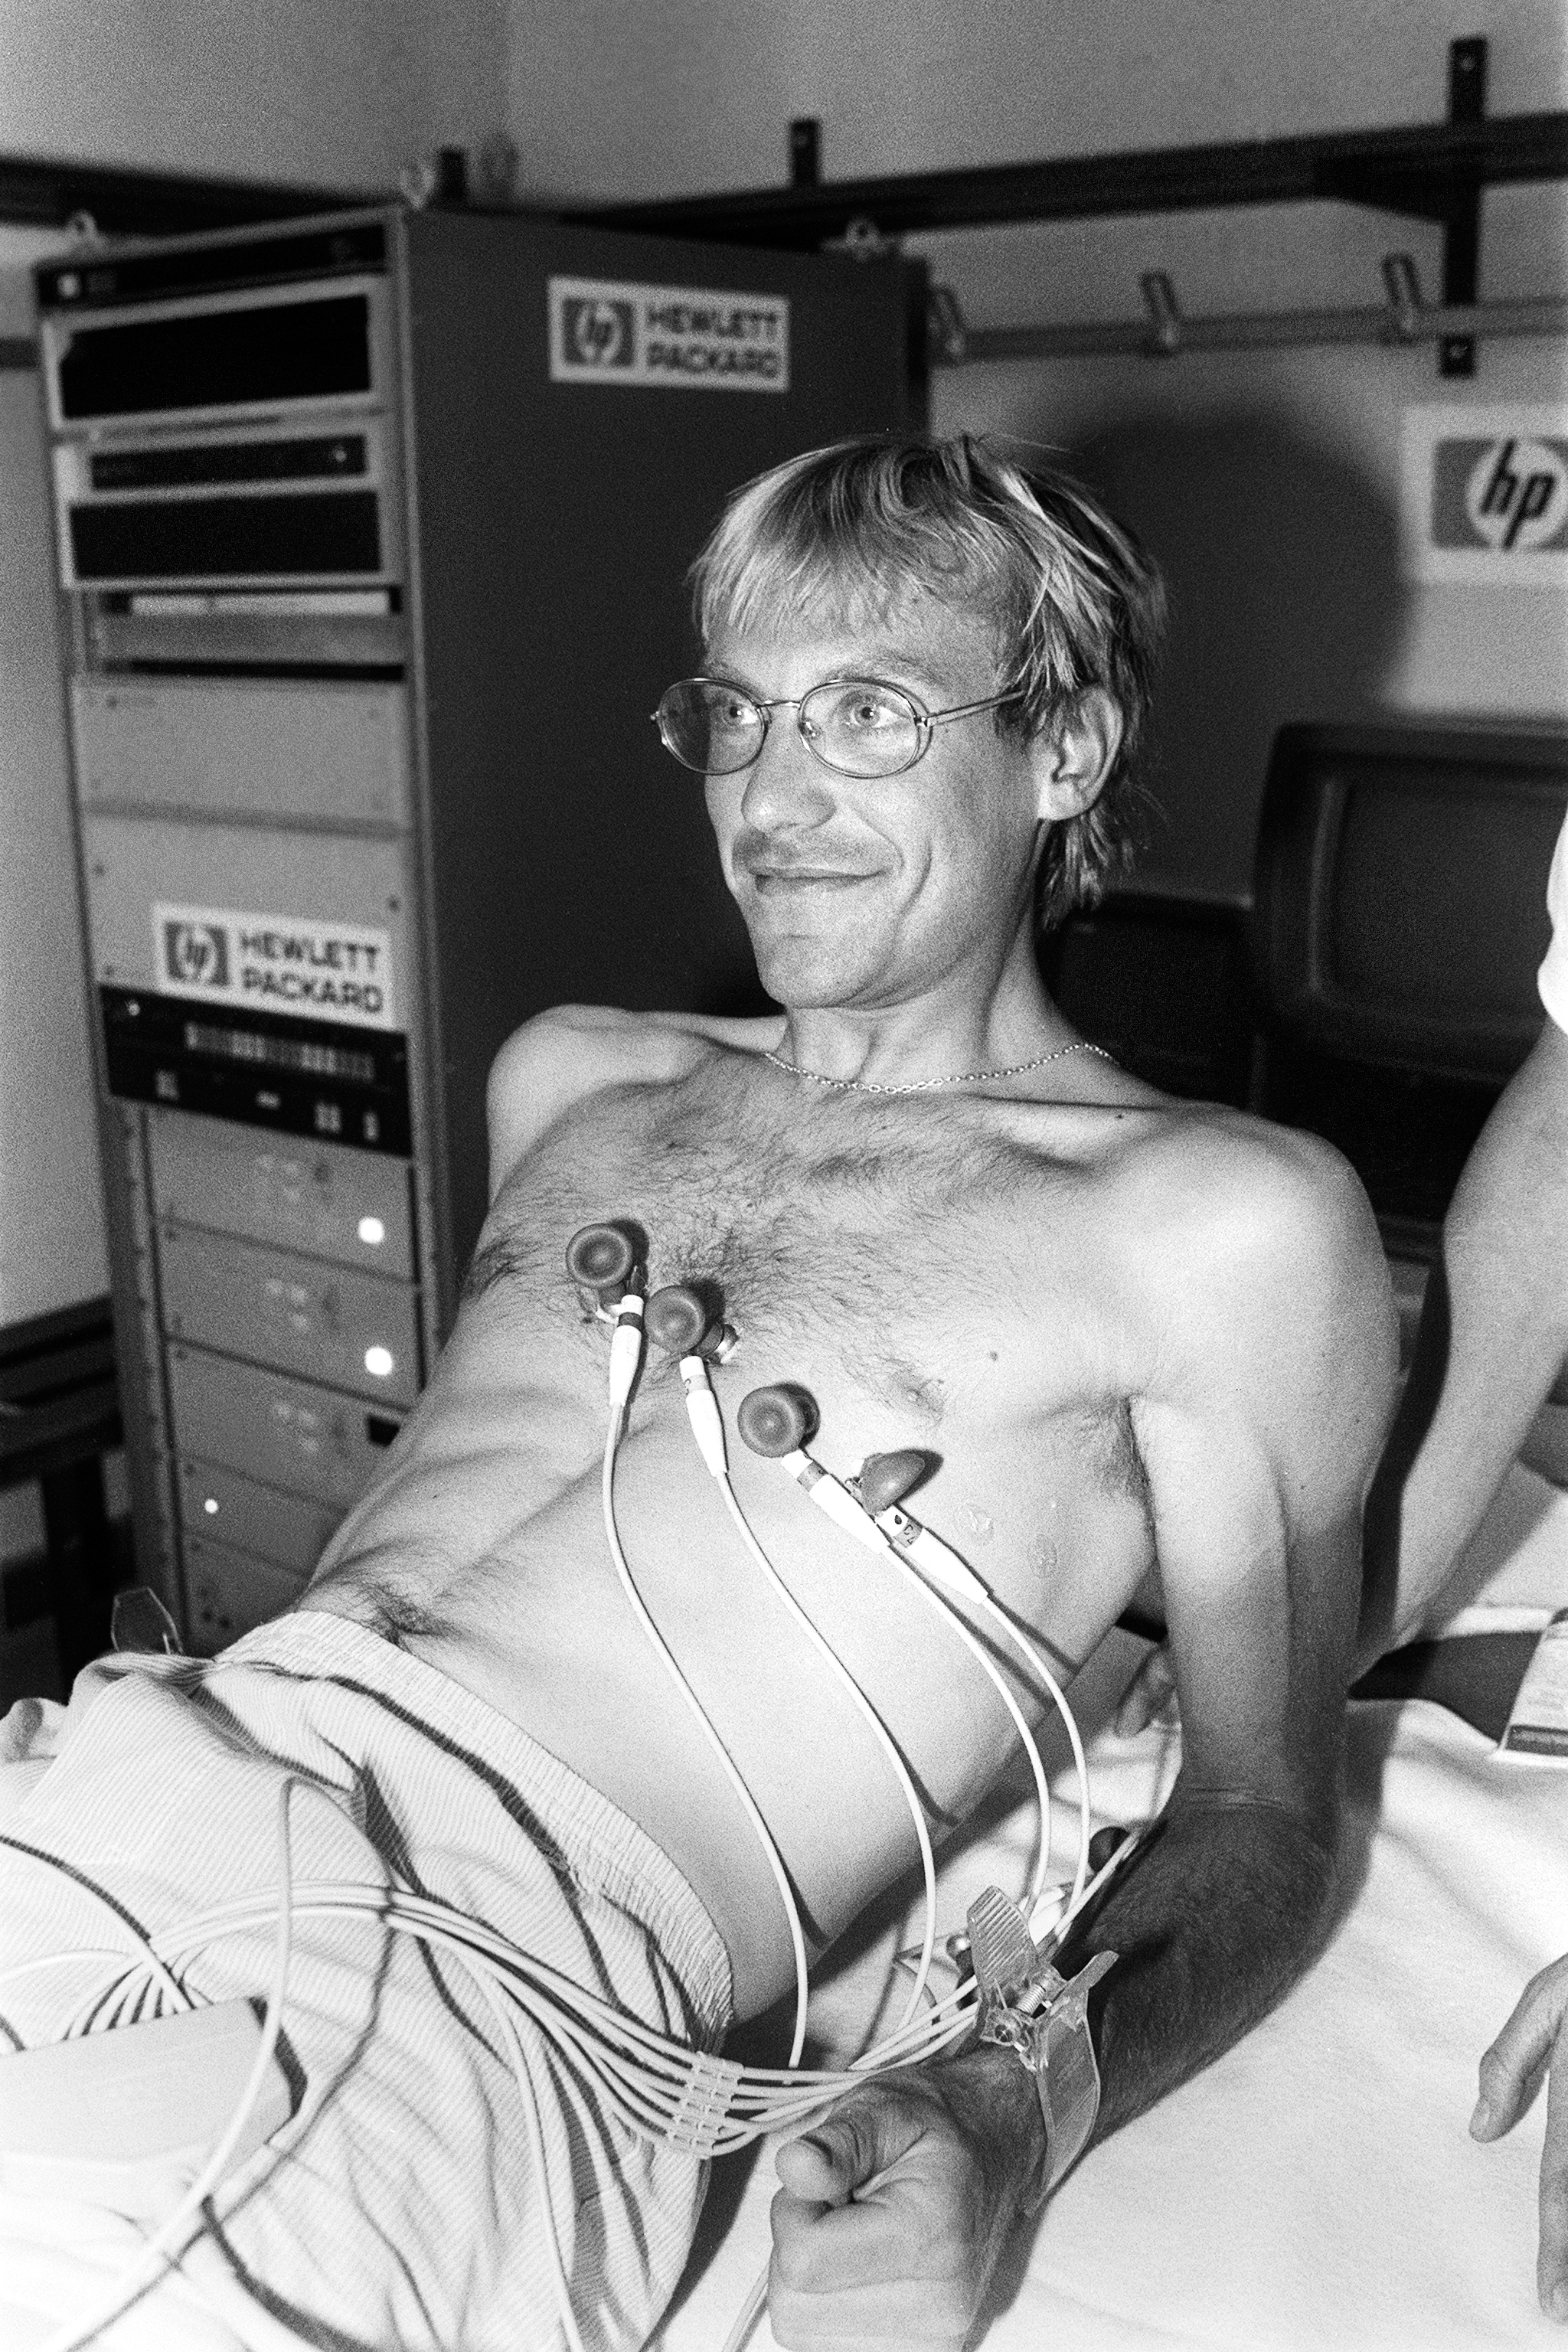 French cyclist Laurent Fignon undergoes a medical exam before the start of the Tour de France cycling road race on June 27, 1984 in Bobigny. Fignon revealed on June 11, 2009, during the recording of a TV show that he suffers advanced stage cancer, but said that there he has no links with doping products. Fignon won the Tour de France in 1983 and 1984.